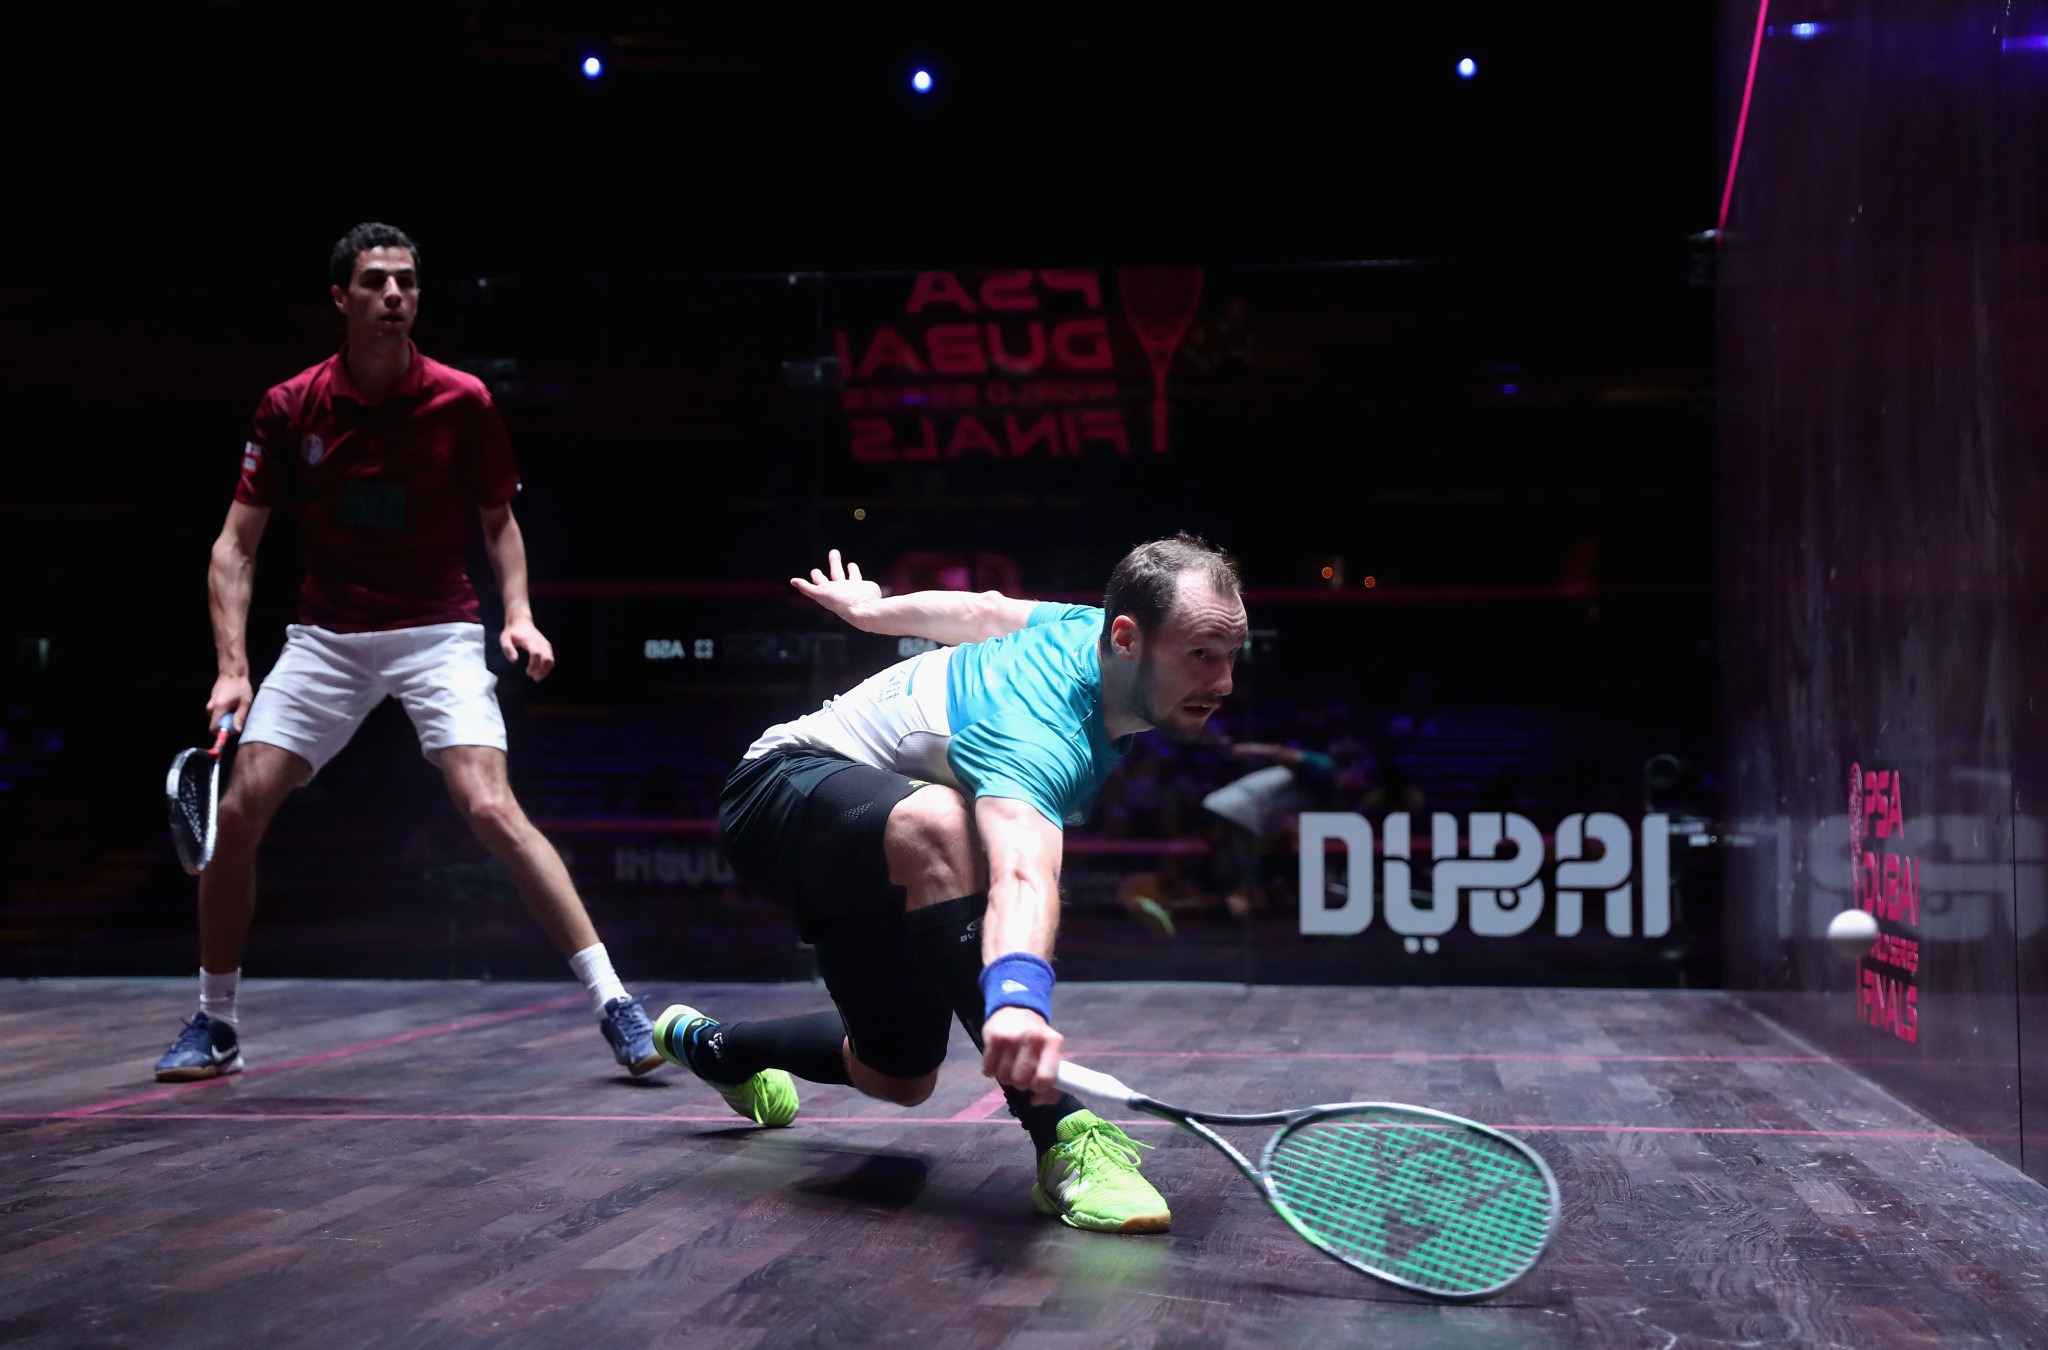 Gaultier to make long-awaited return to PSA World Tour at J.P. Morgan Tournament of Champions